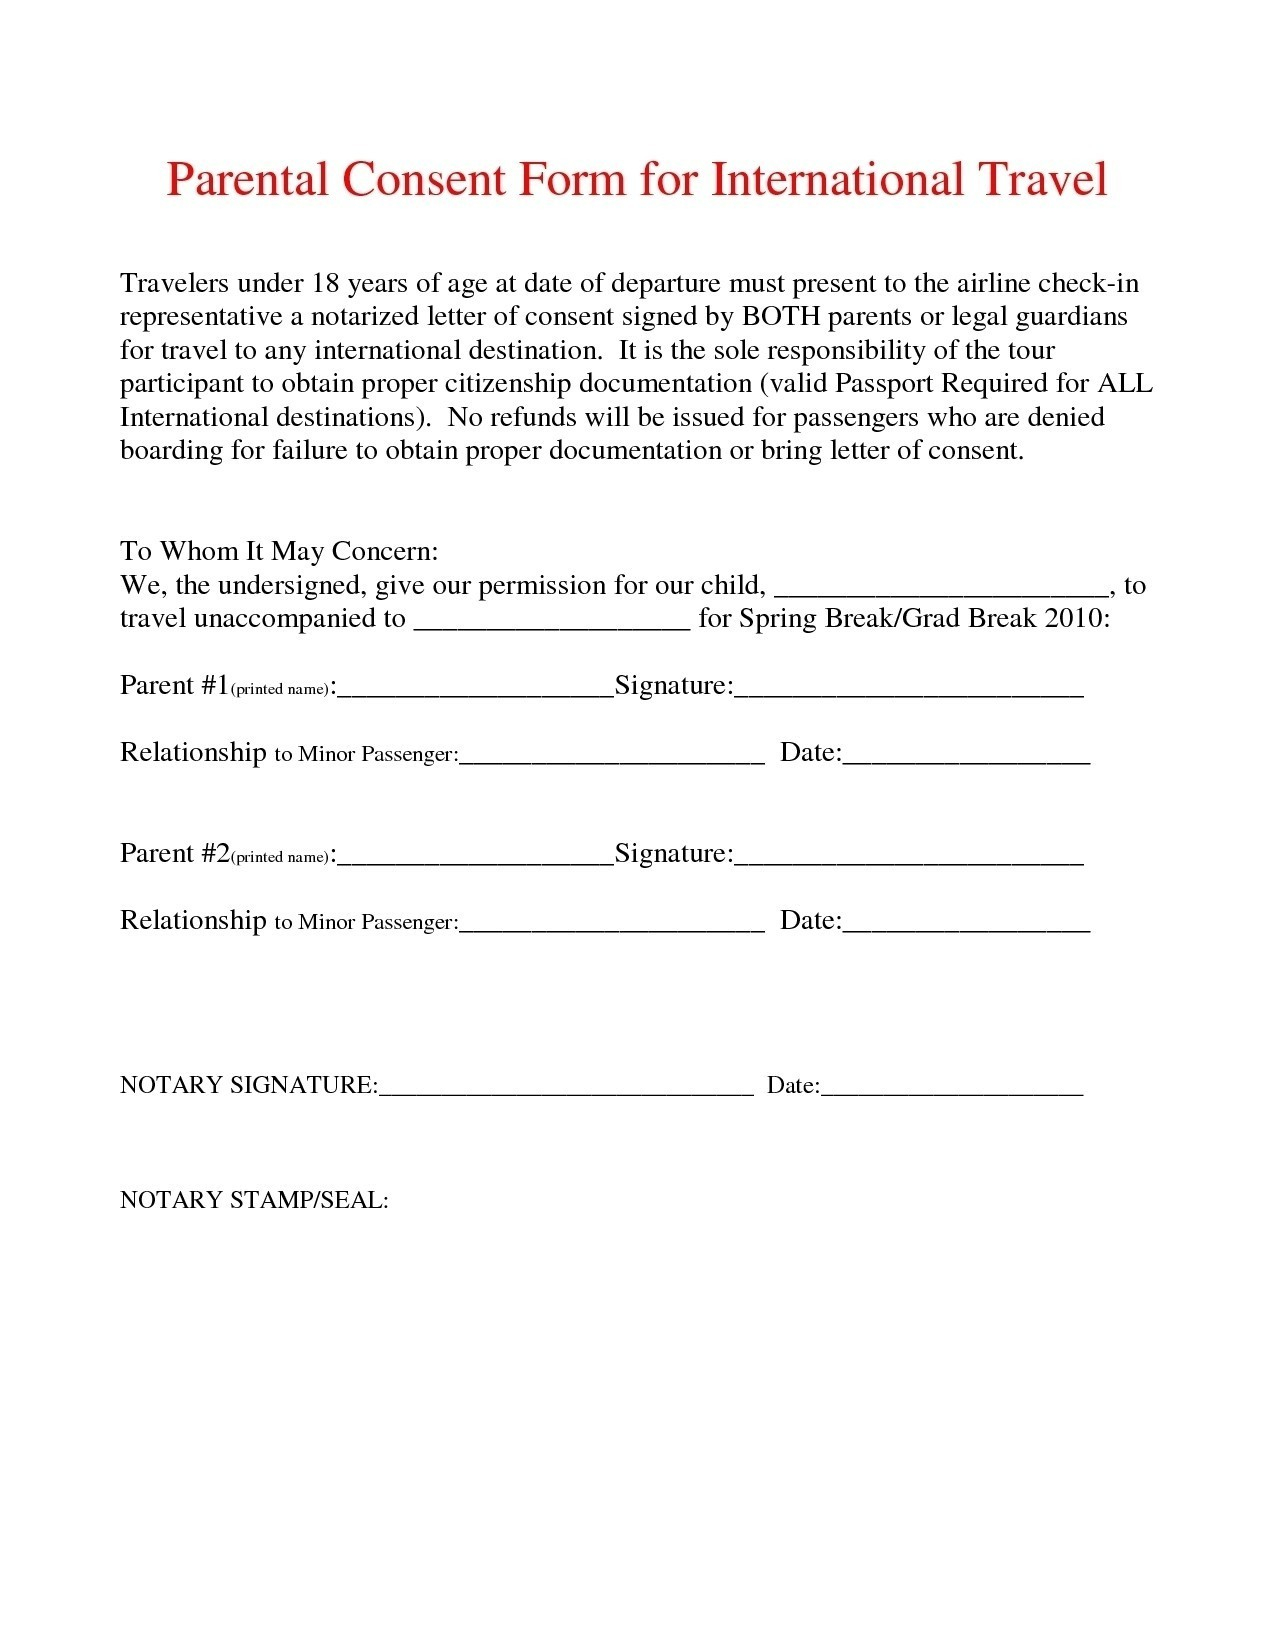 Child Travel Consent Letter Template - Sample Permission Letter to Travel Best Notarized Letter